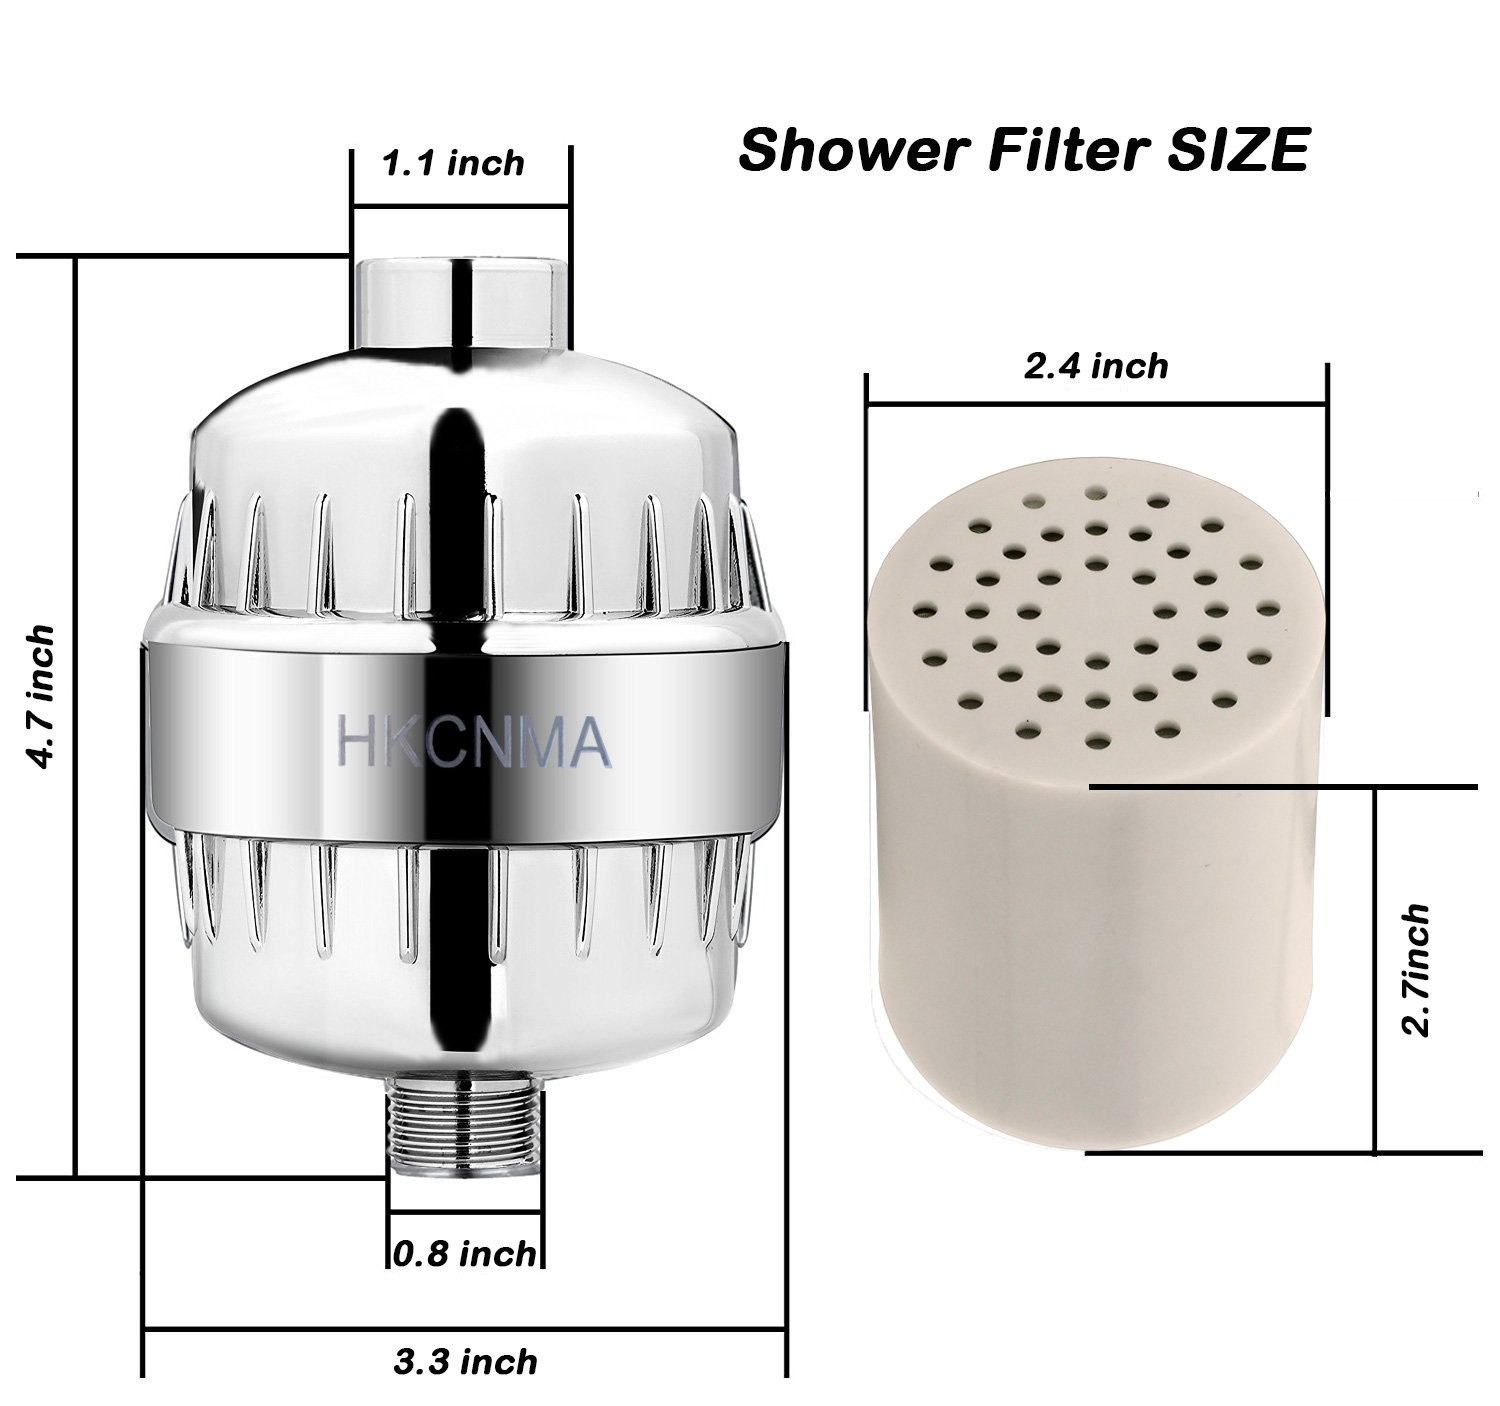 Ltd. Shower Filter 10 Stage with 2 Replaceable Filter Cartridges Water Filters for Any Showerheads /& Handheld Shower-Remove chlorine Shenzhen HKCNMA Co